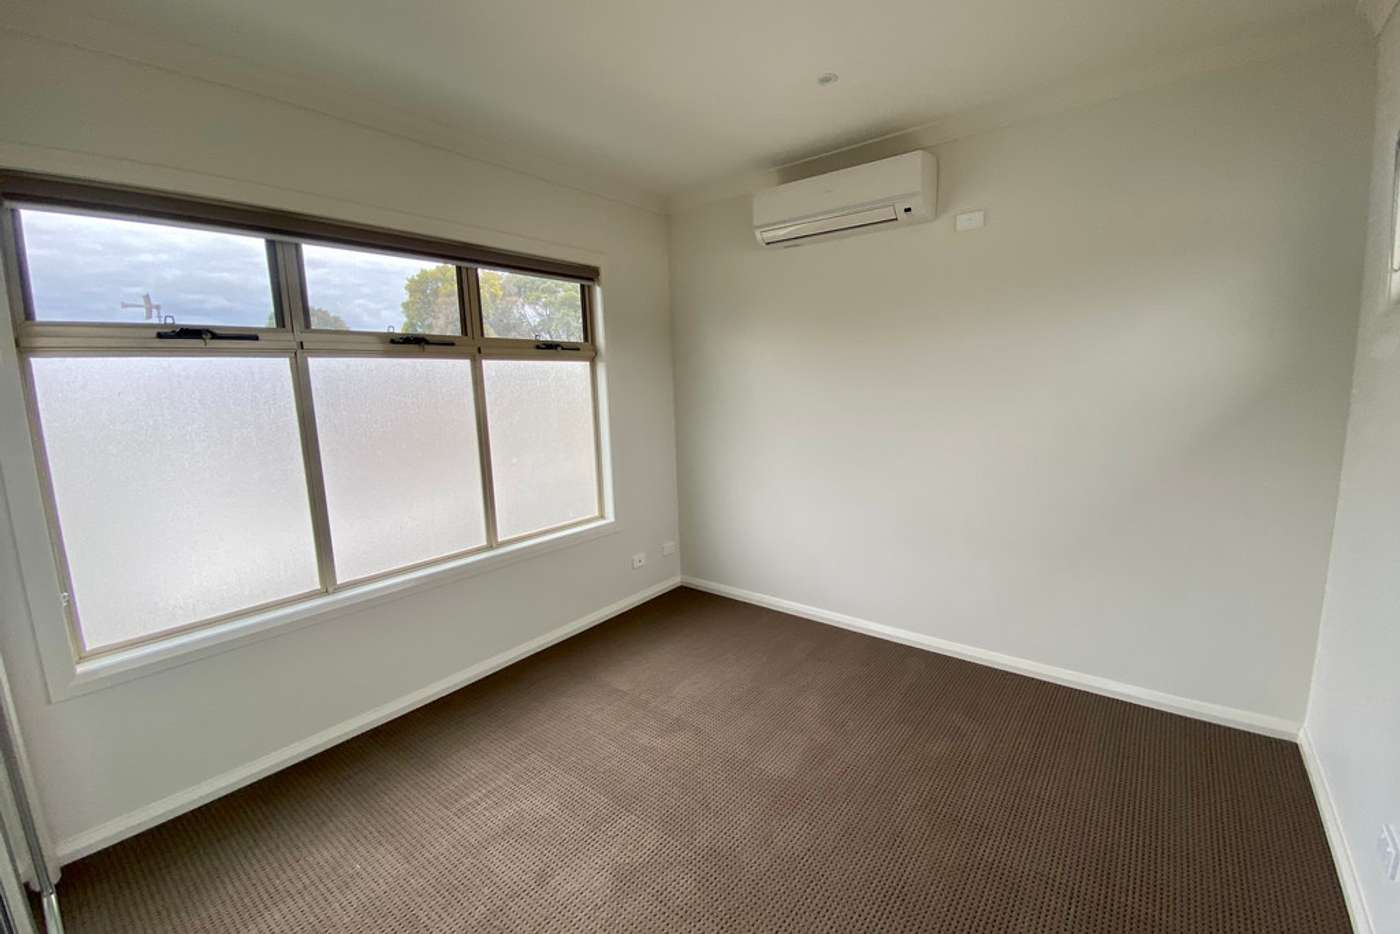 Seventh view of Homely townhouse listing, 1/177 Maidstone Street,, Altona VIC 3018